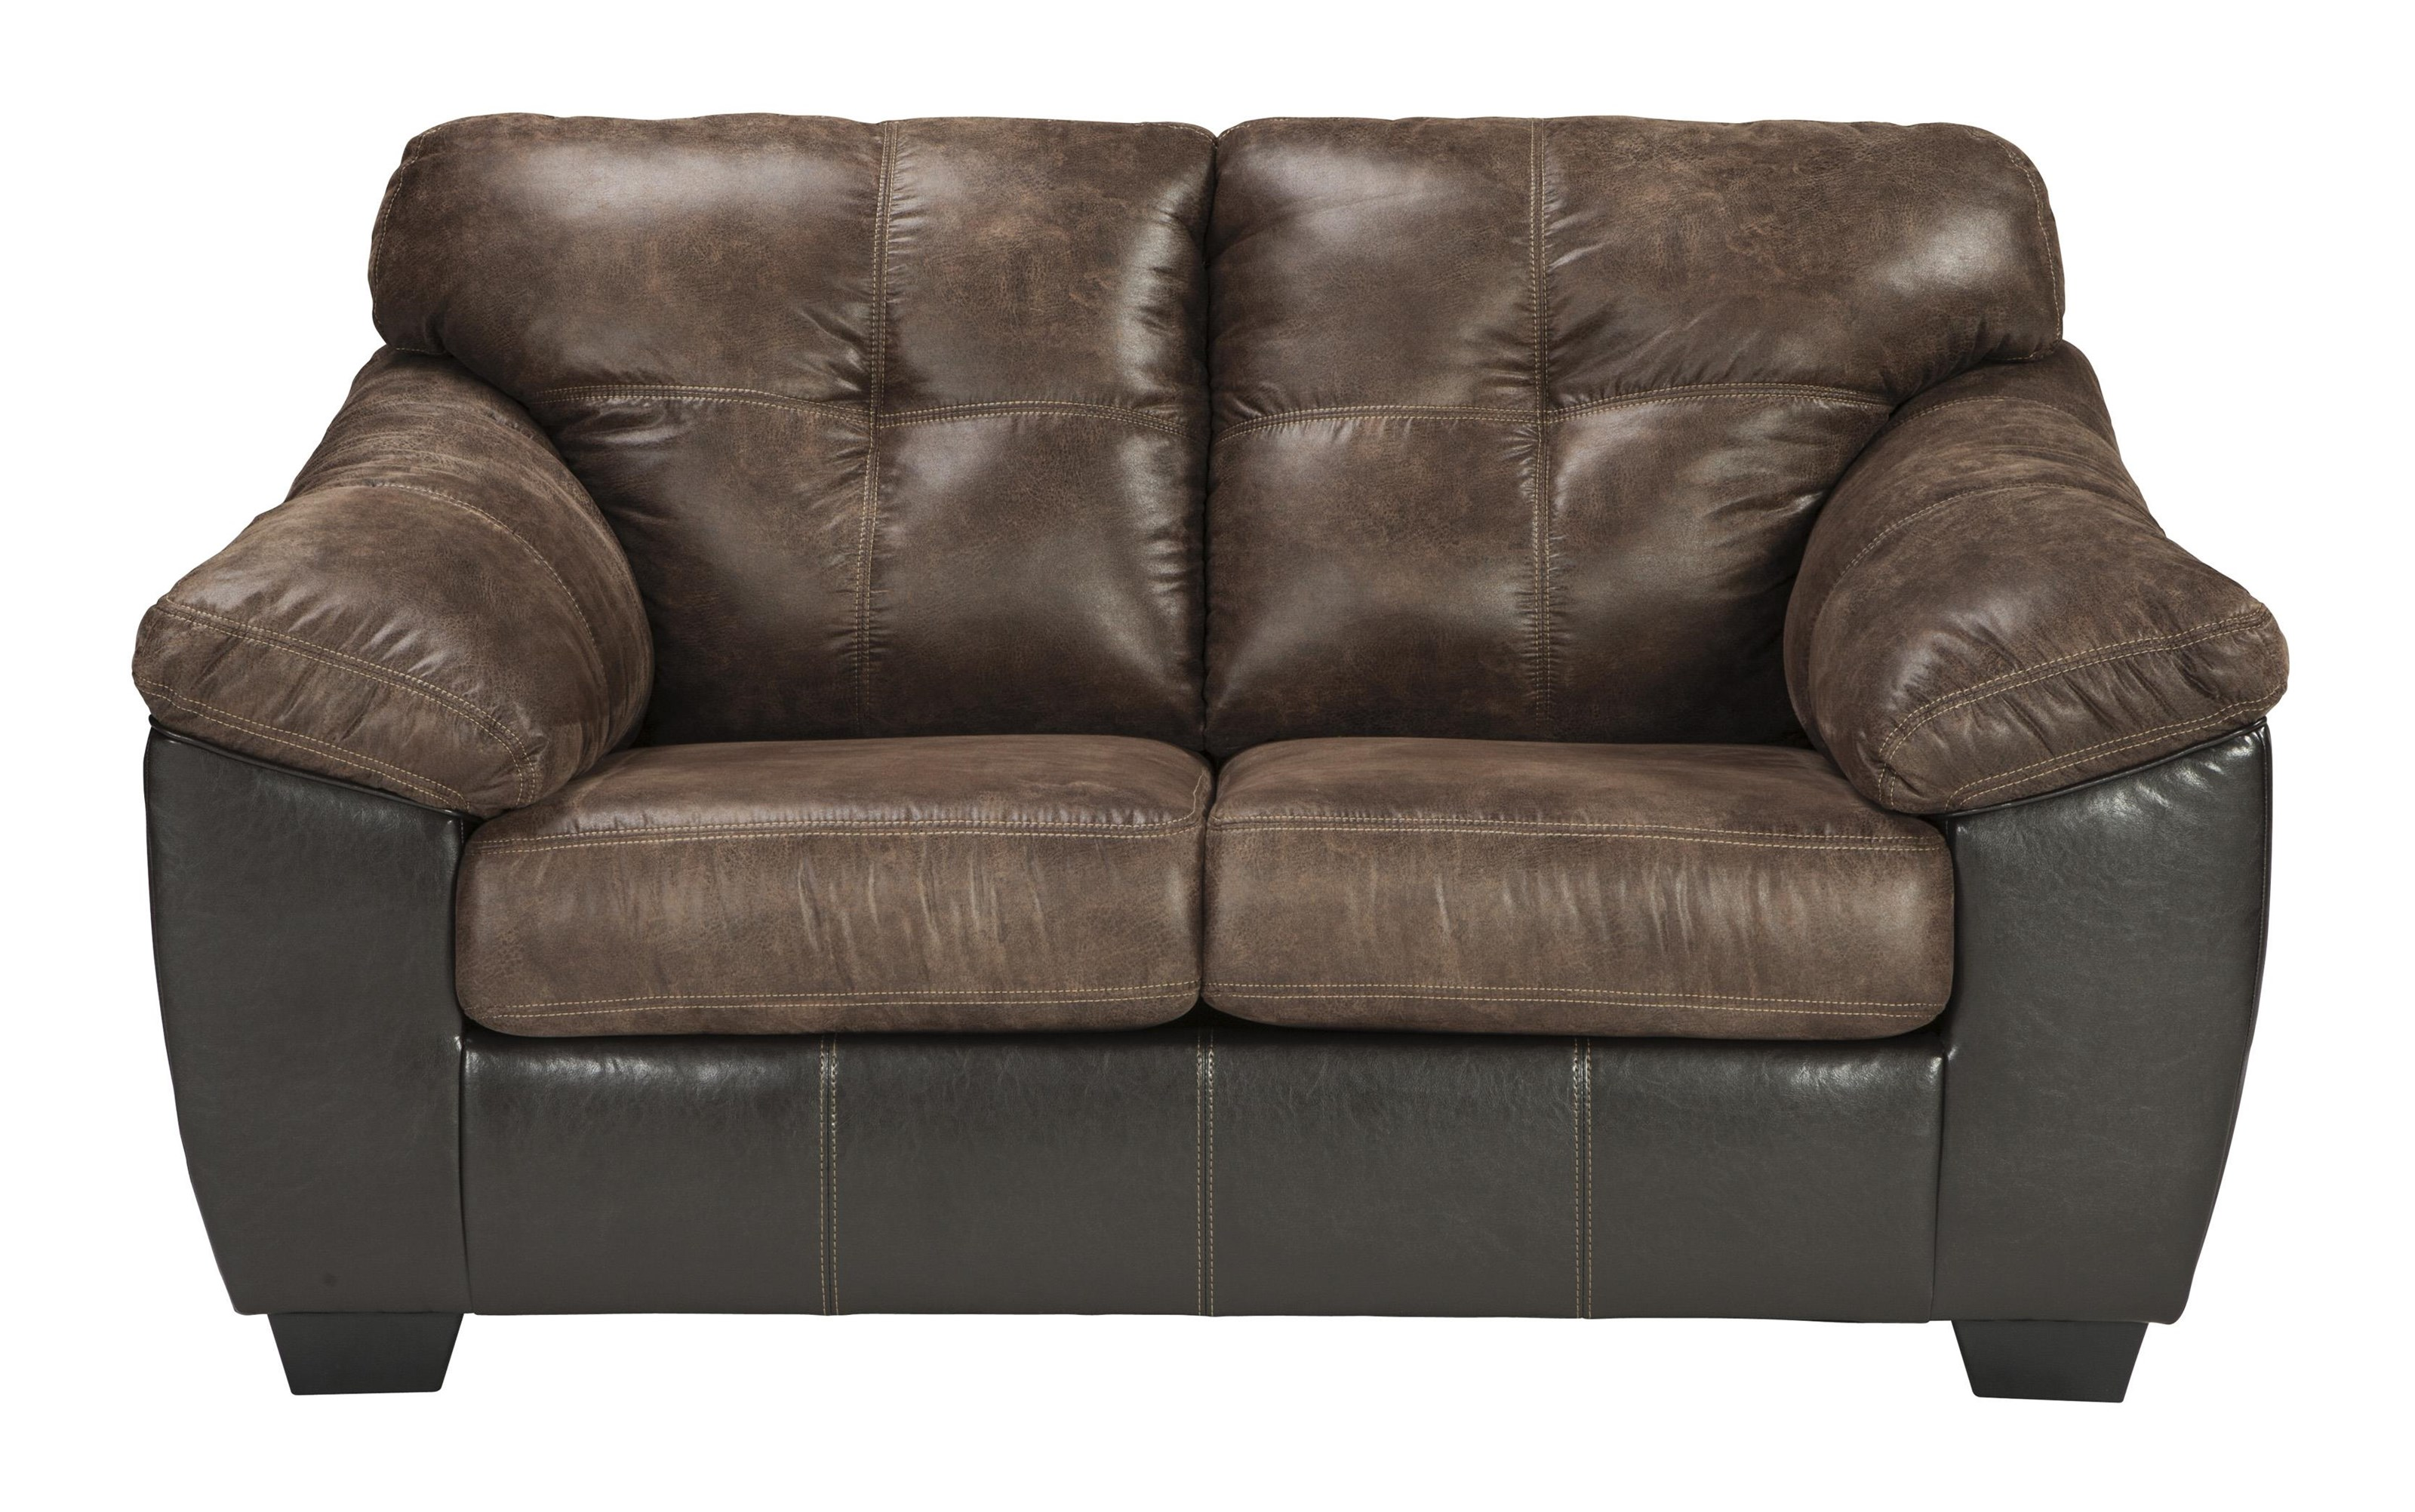 Gregale - 2 Tone Contemporary Stationary Love Seat by Signature Design by Ashley at Westrich Furniture & Appliances